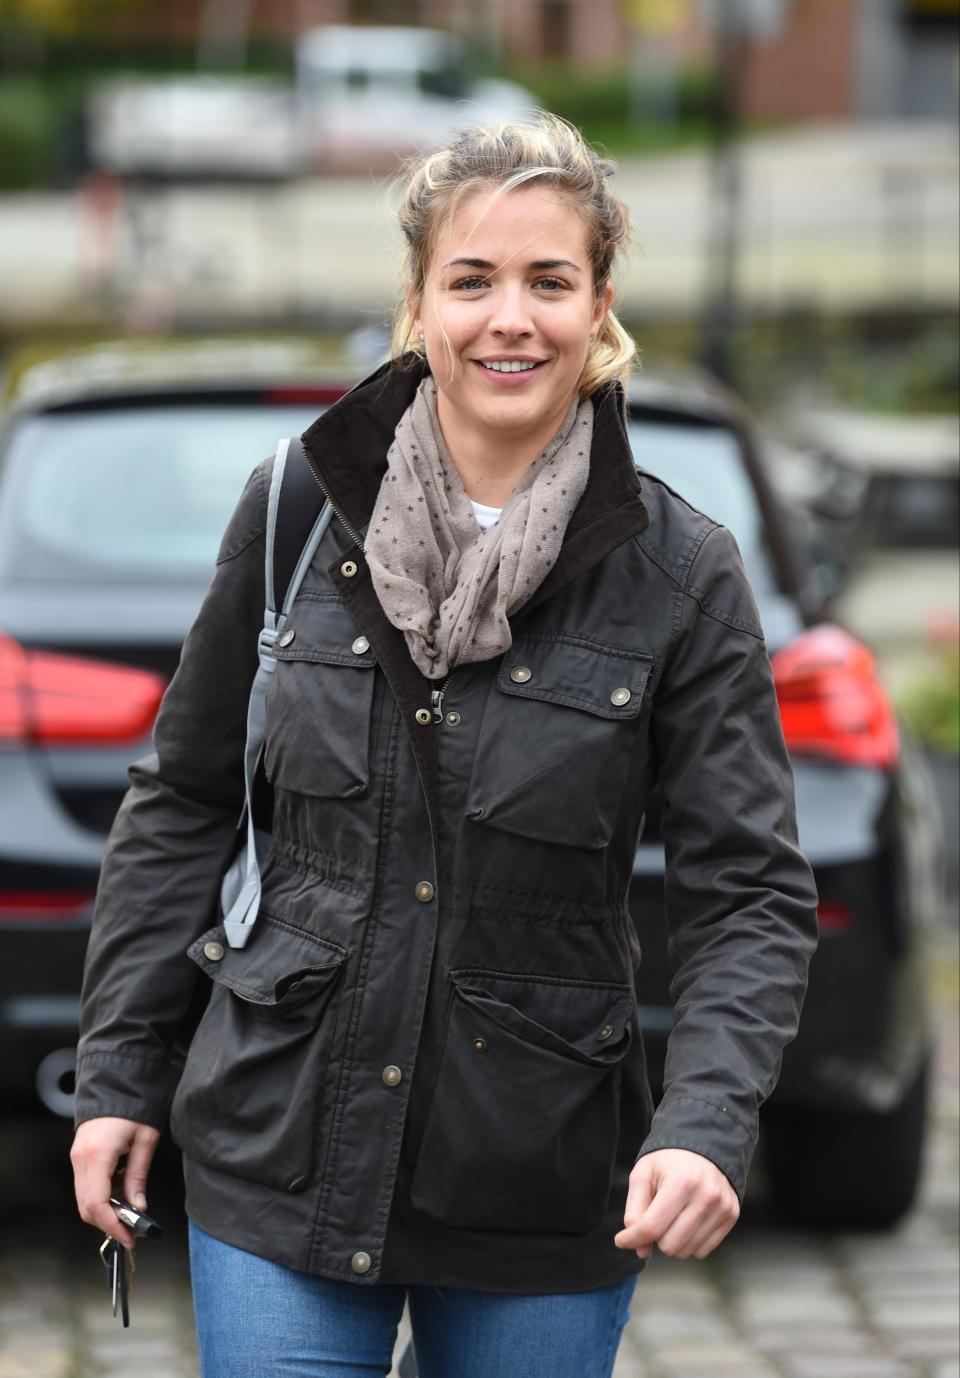 Gemma Atkinson has insisted she is still friends with Alexandra Burke